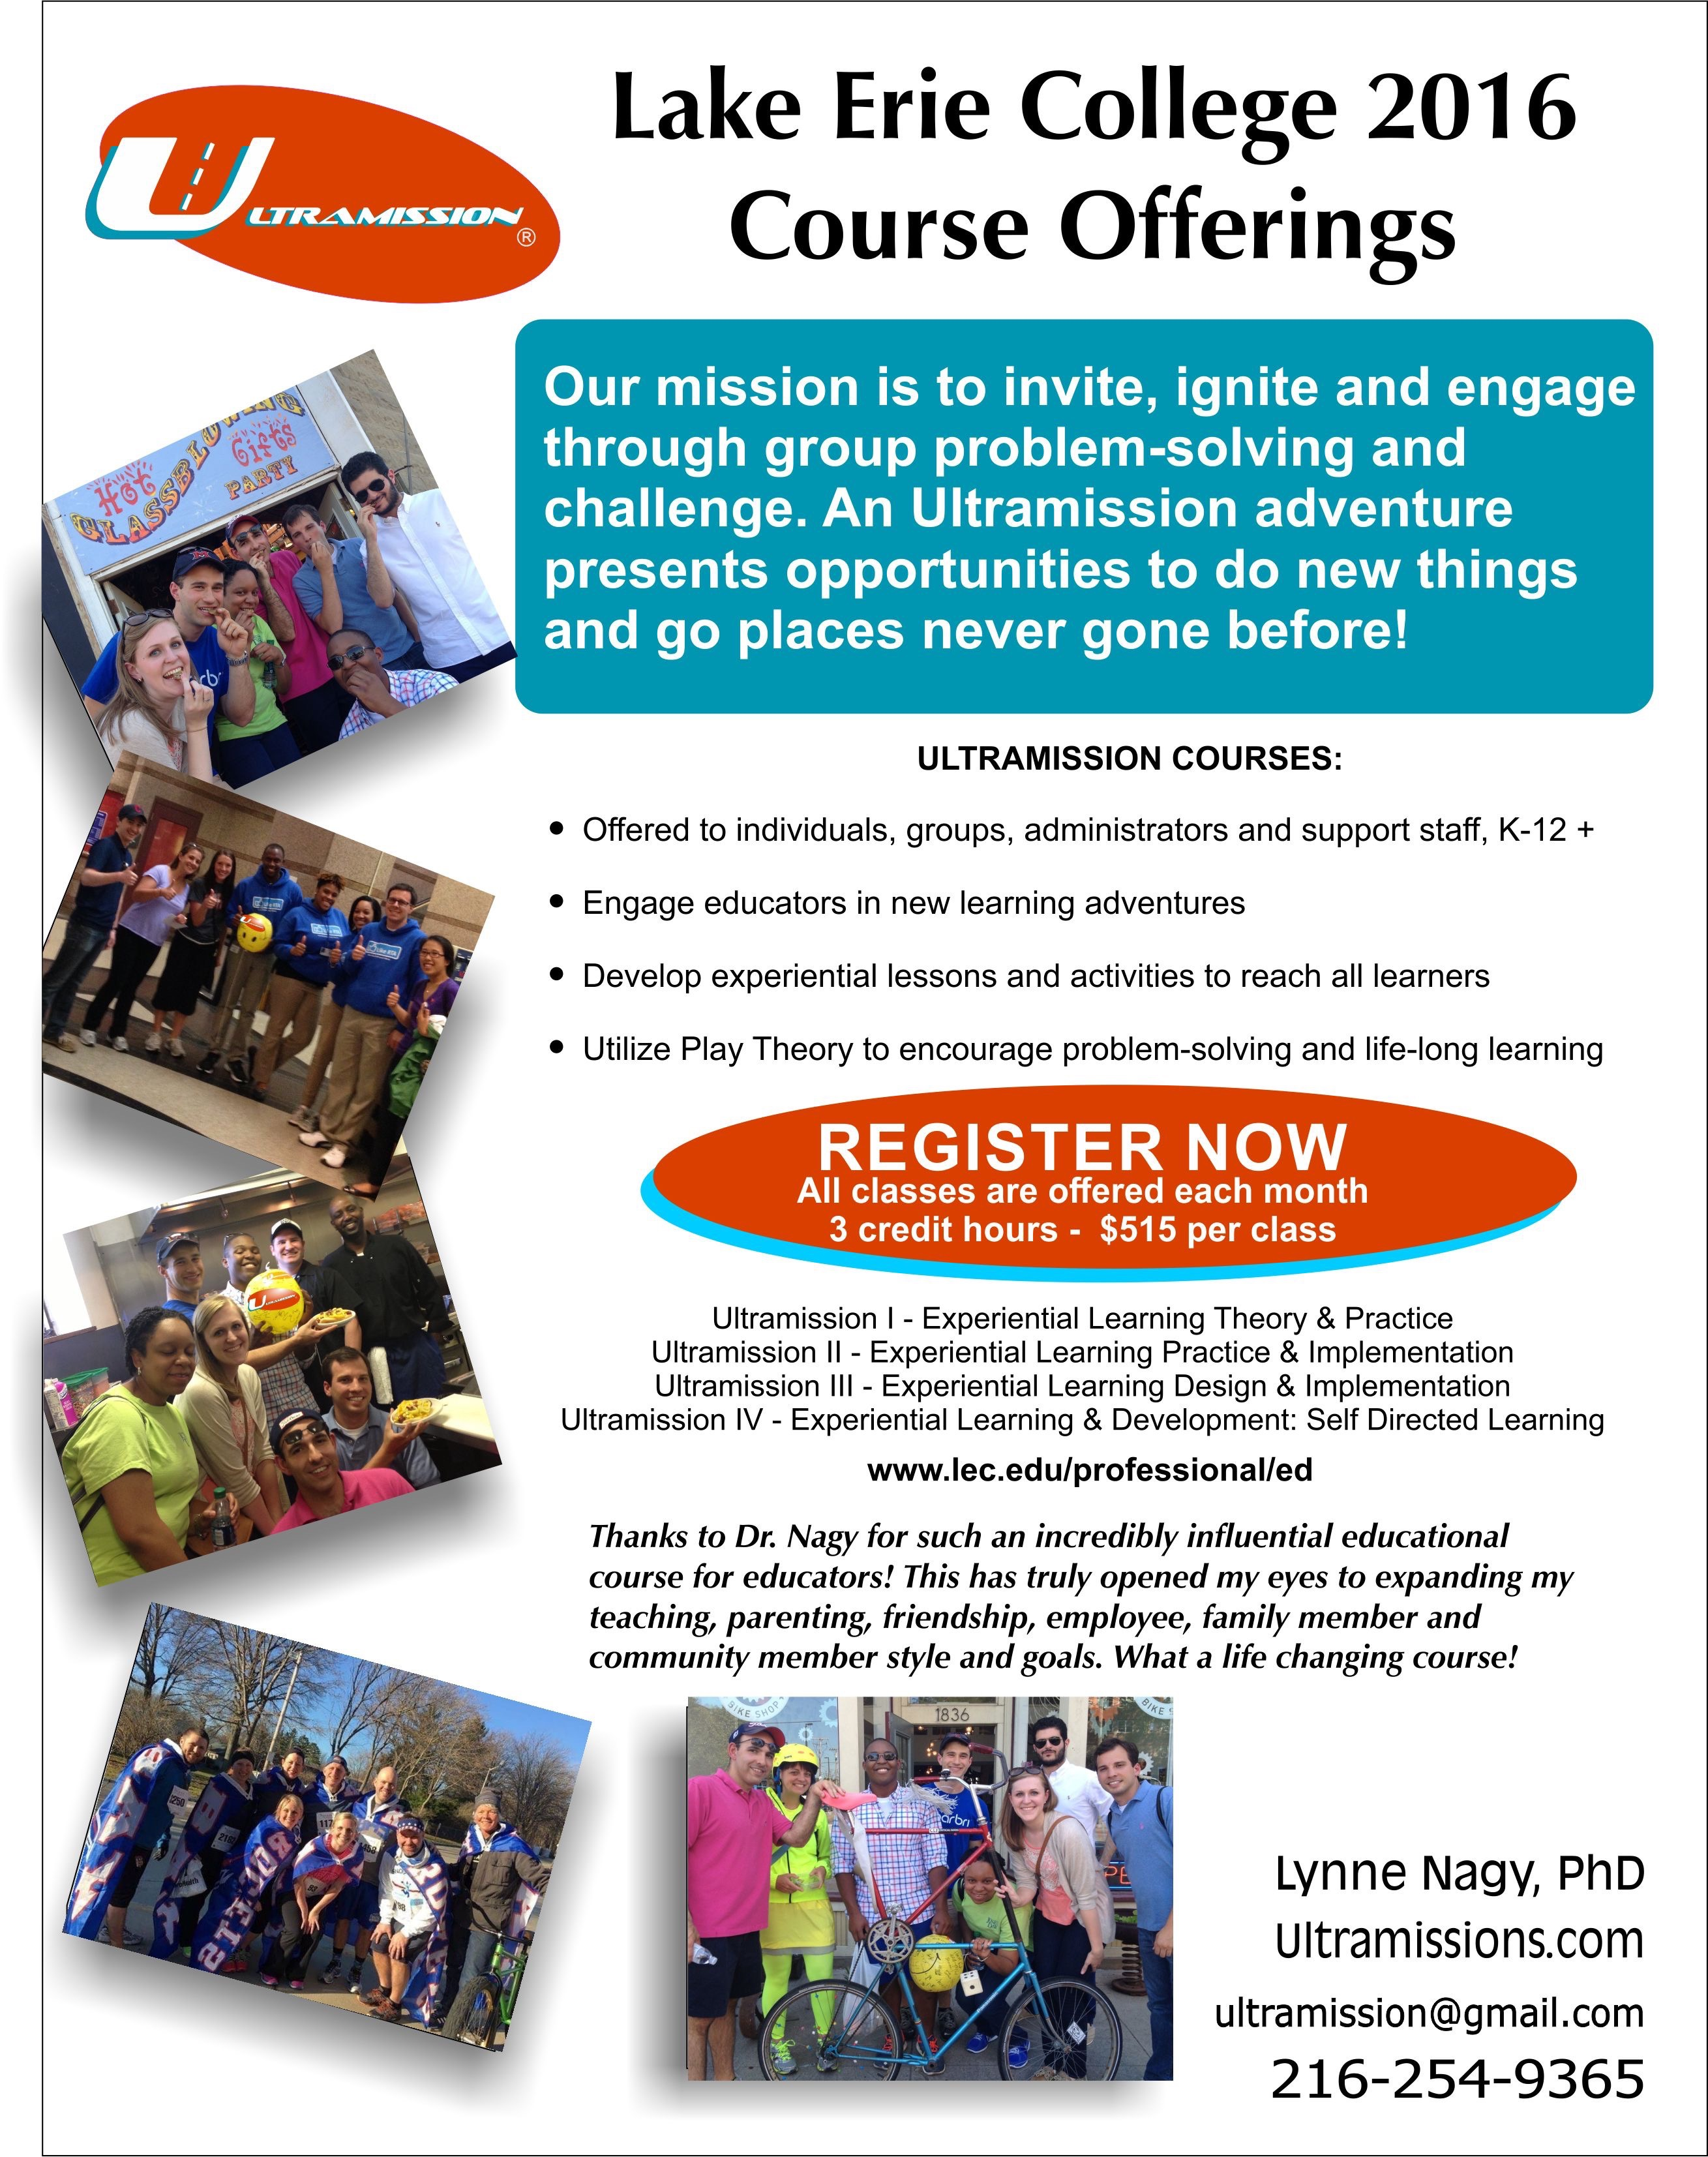 Lake Erie College 2016 Course Offerings